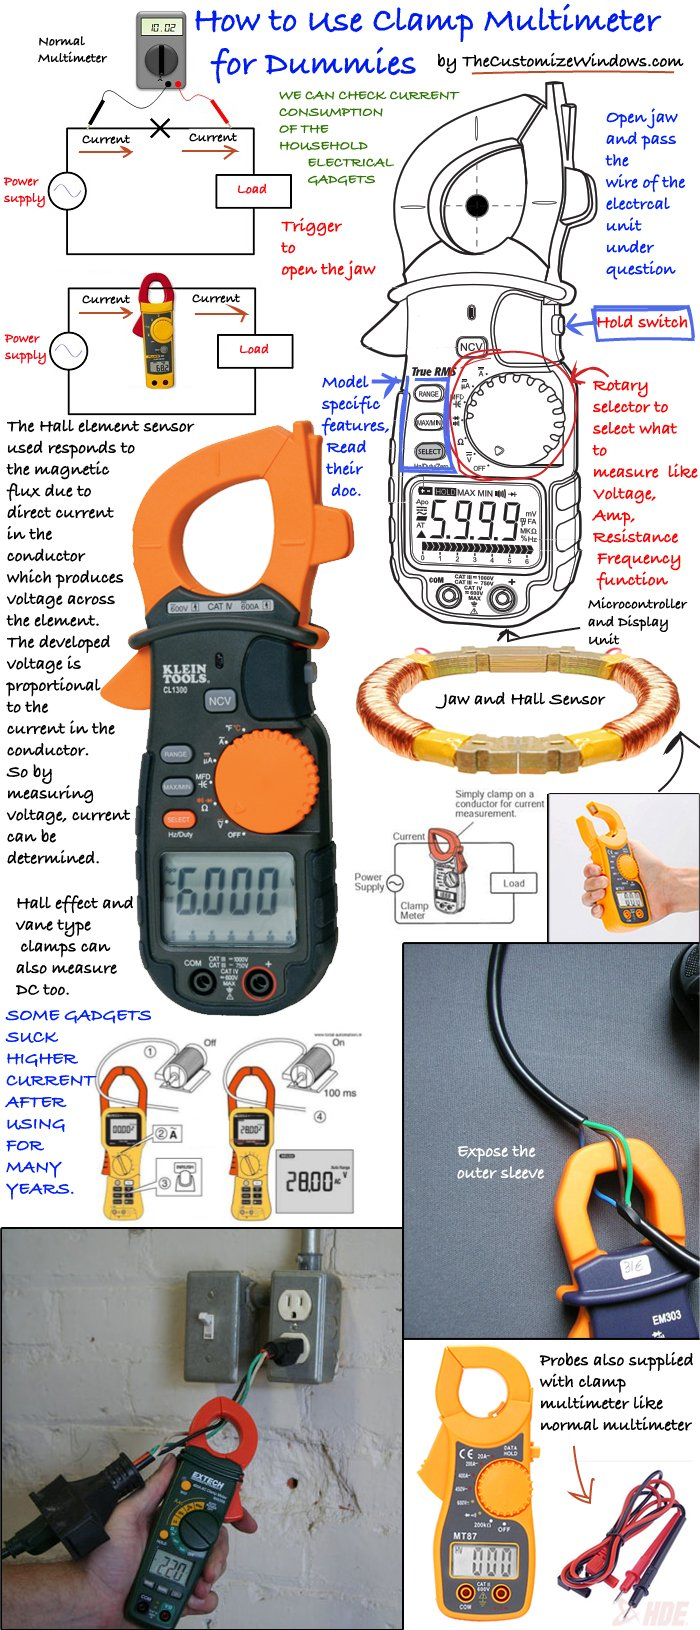 Clamp-Multimeter-How-To-Use-For-Dummies